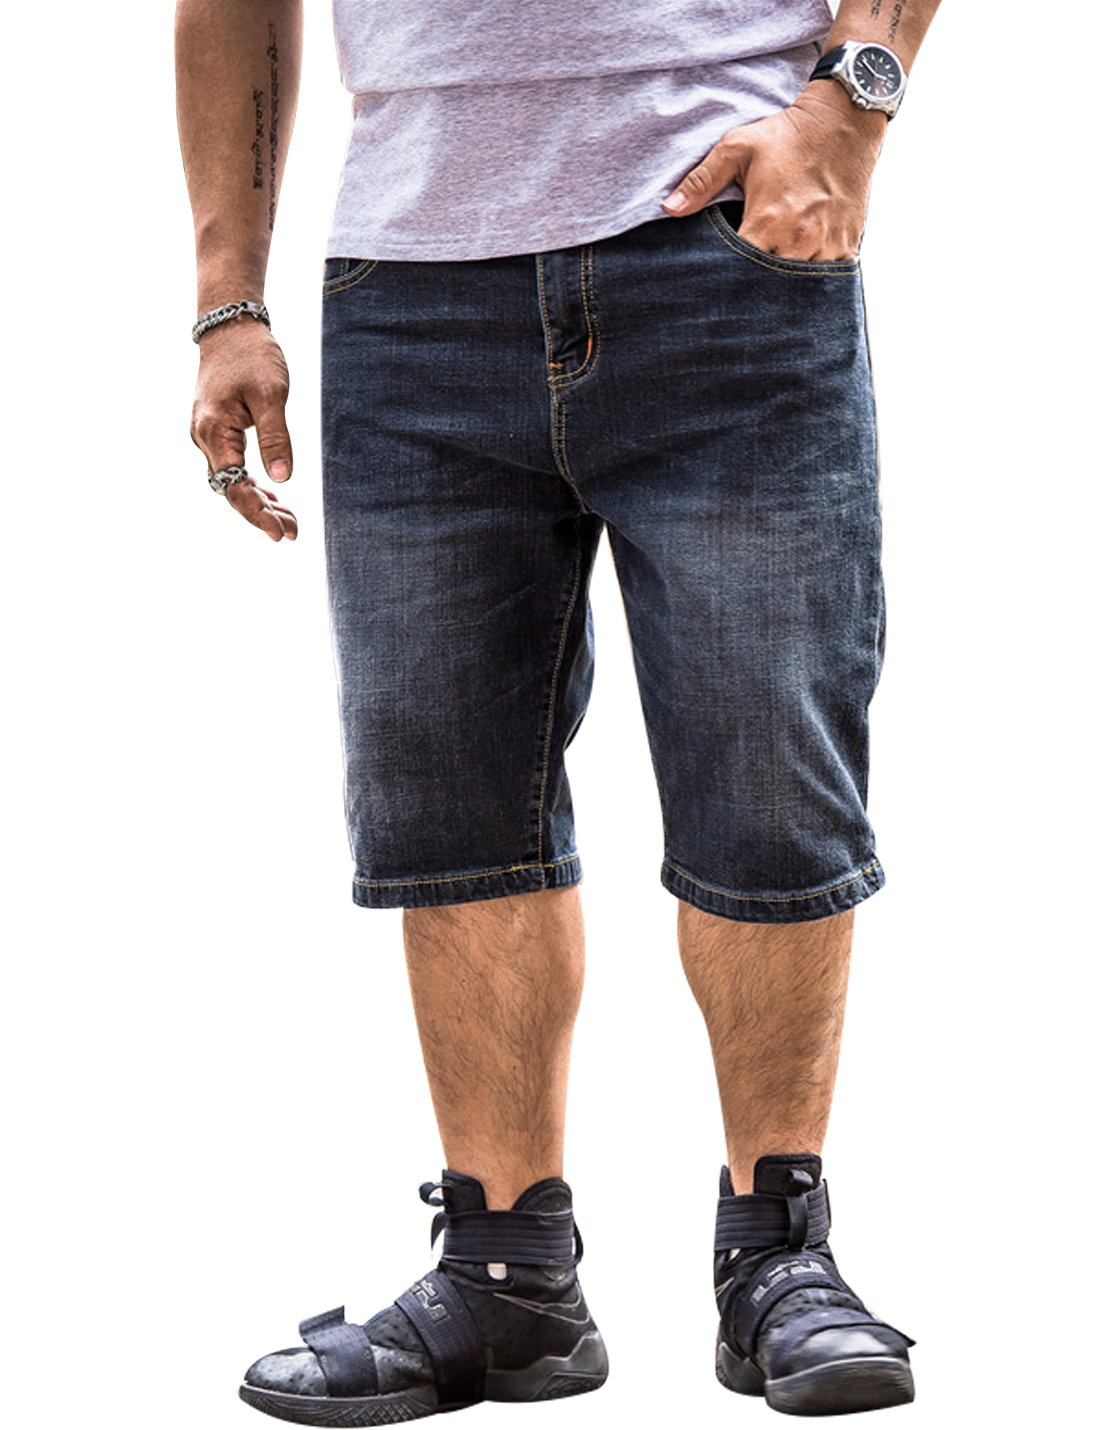 Yeokou Men's Summer Hip Hop Loose Straight Leg Denim Jean Utility Work Short 46W (32, Black)